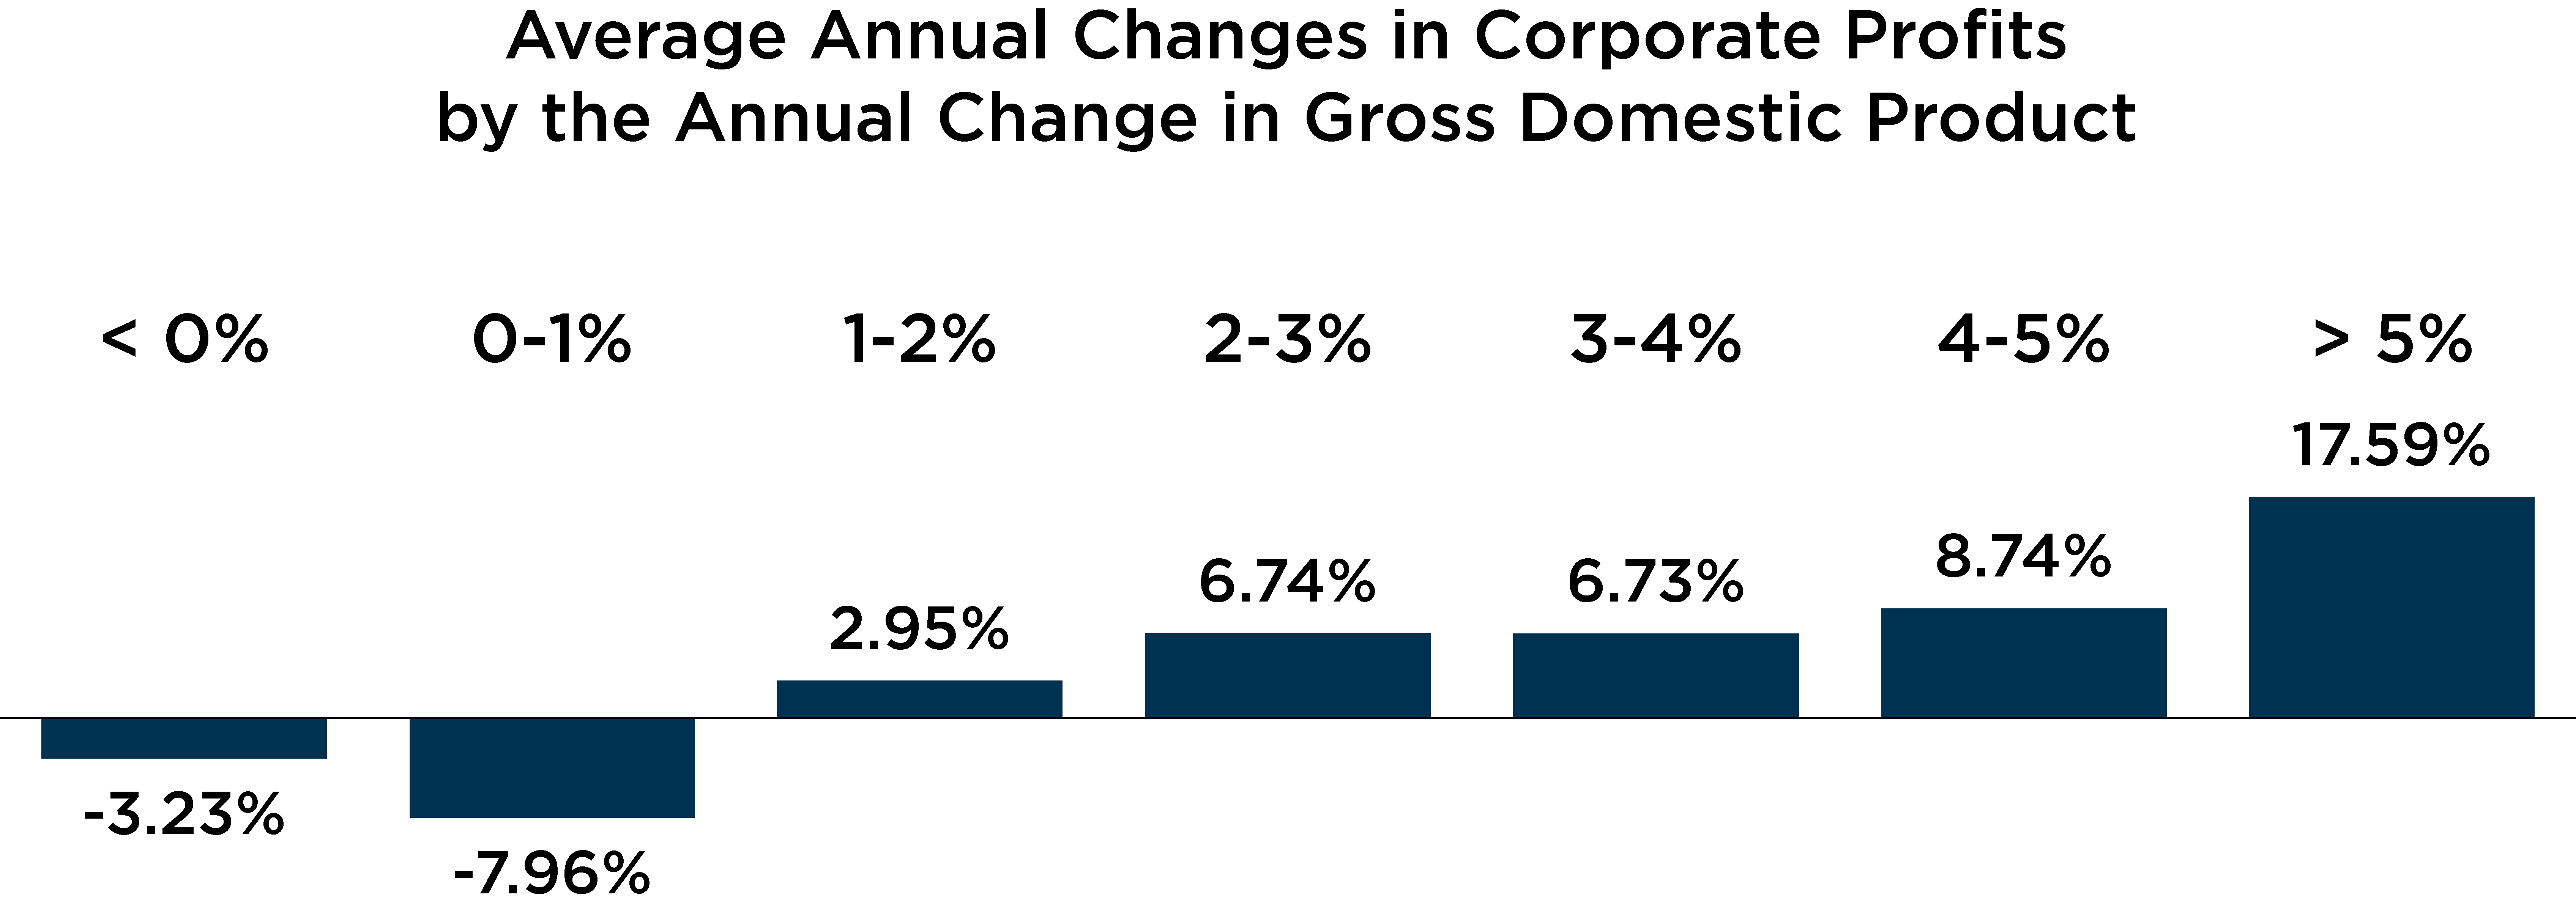 Graph depicting the average annual changes in corporate profits by the annual change in GDP